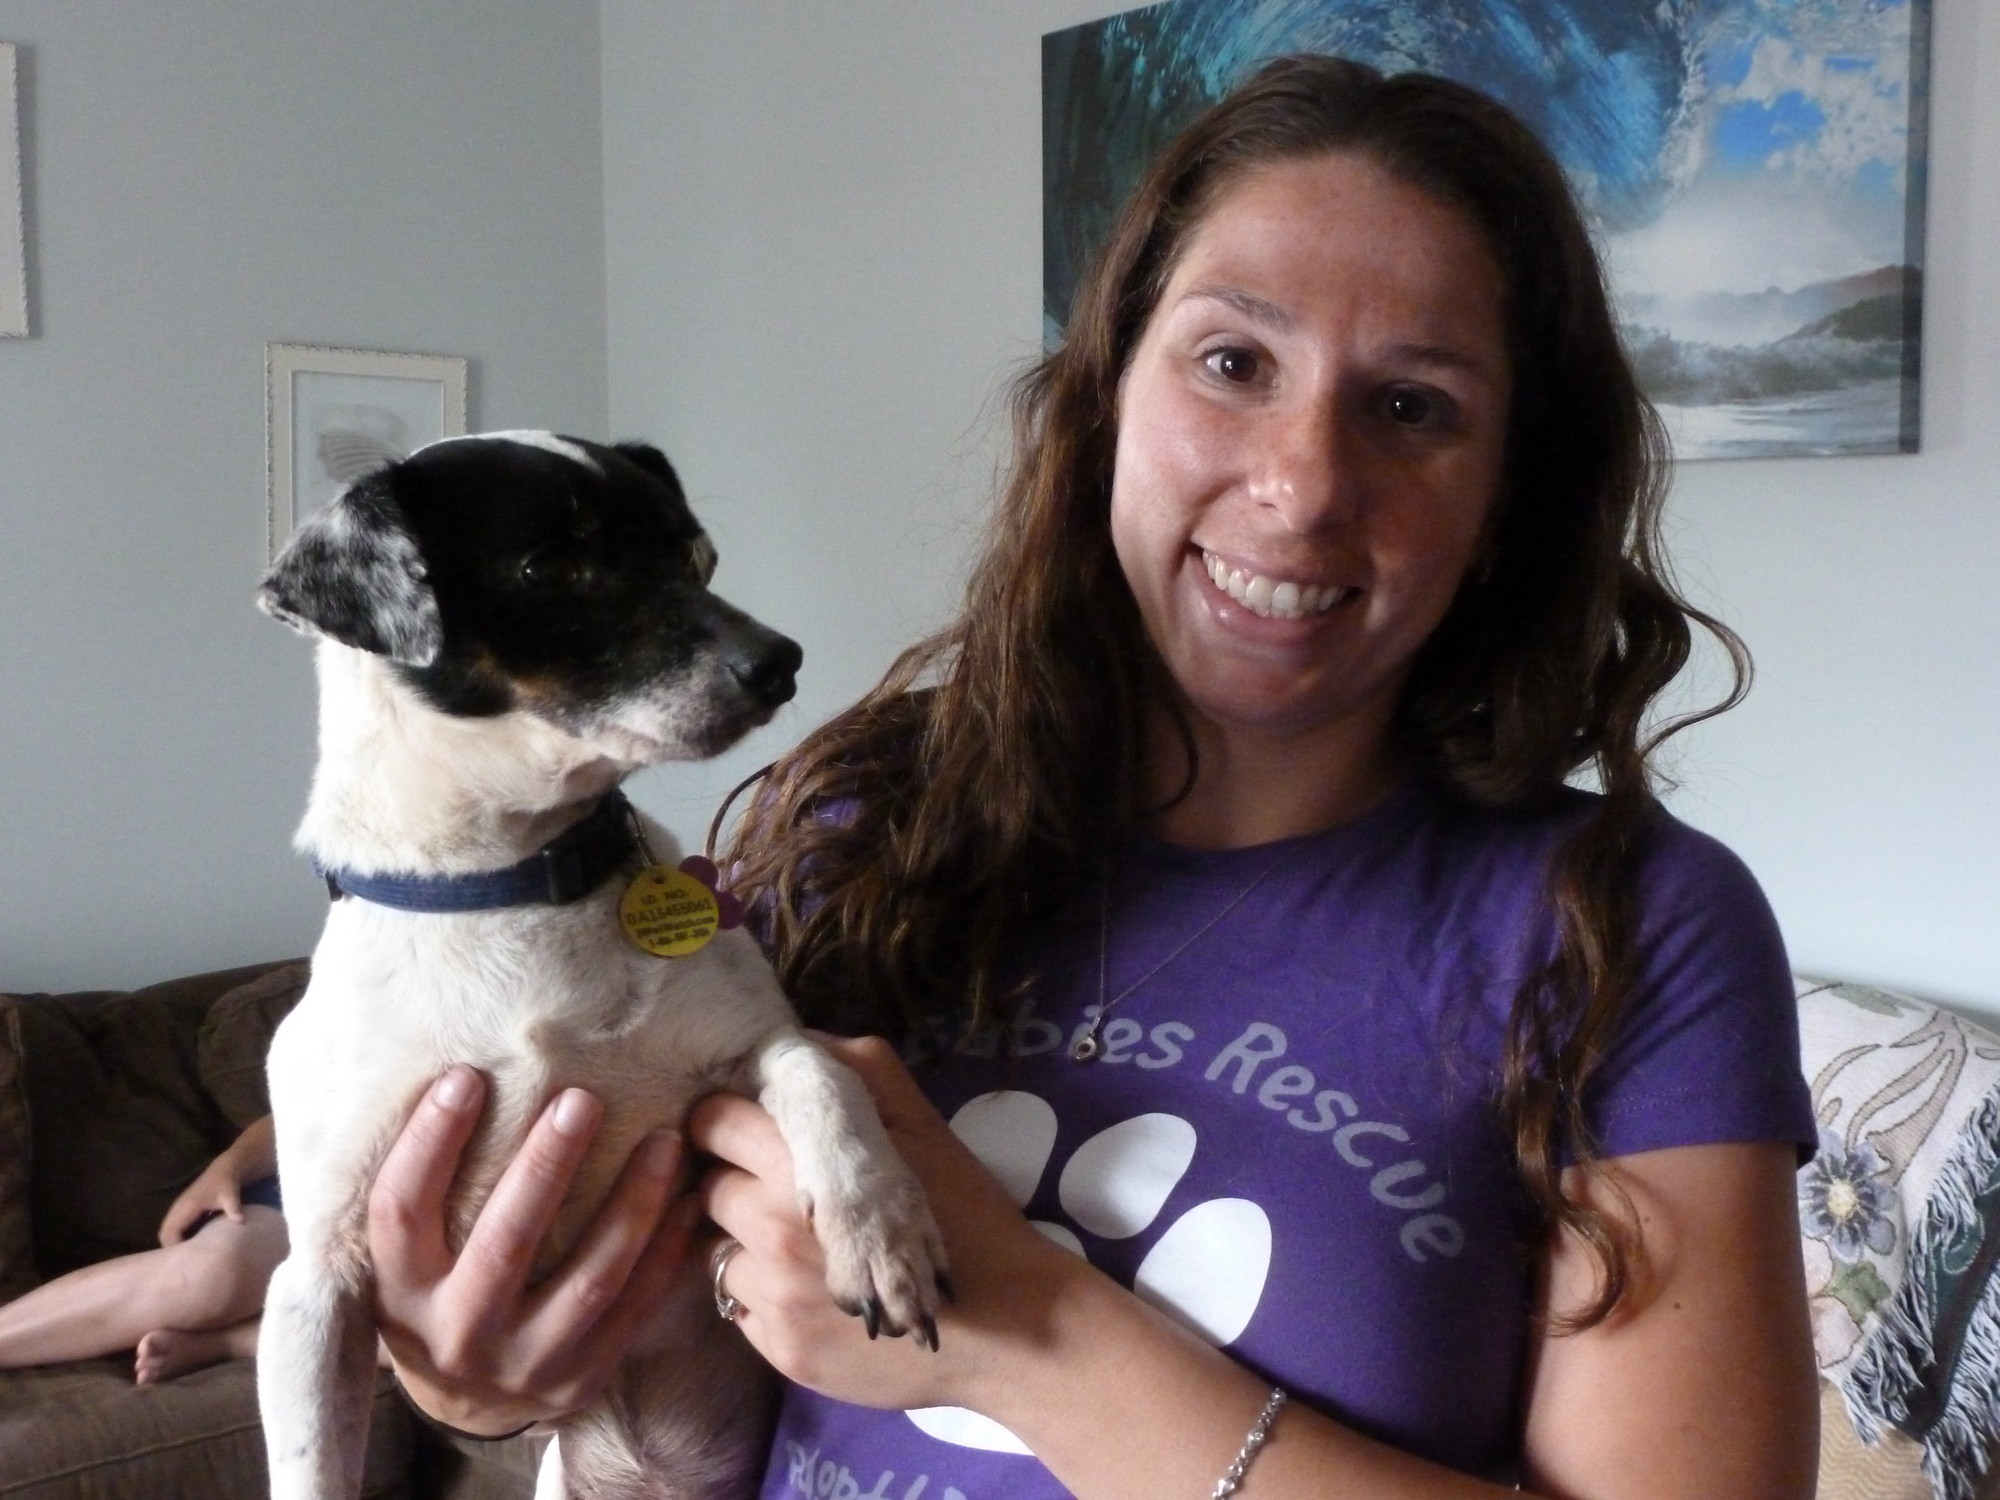 Fostered canines of Fur Babies receive custom ID tags, as modeled above by Oscar, a Jack Russell mix who has lived with Kristen Prelesnick for one month.